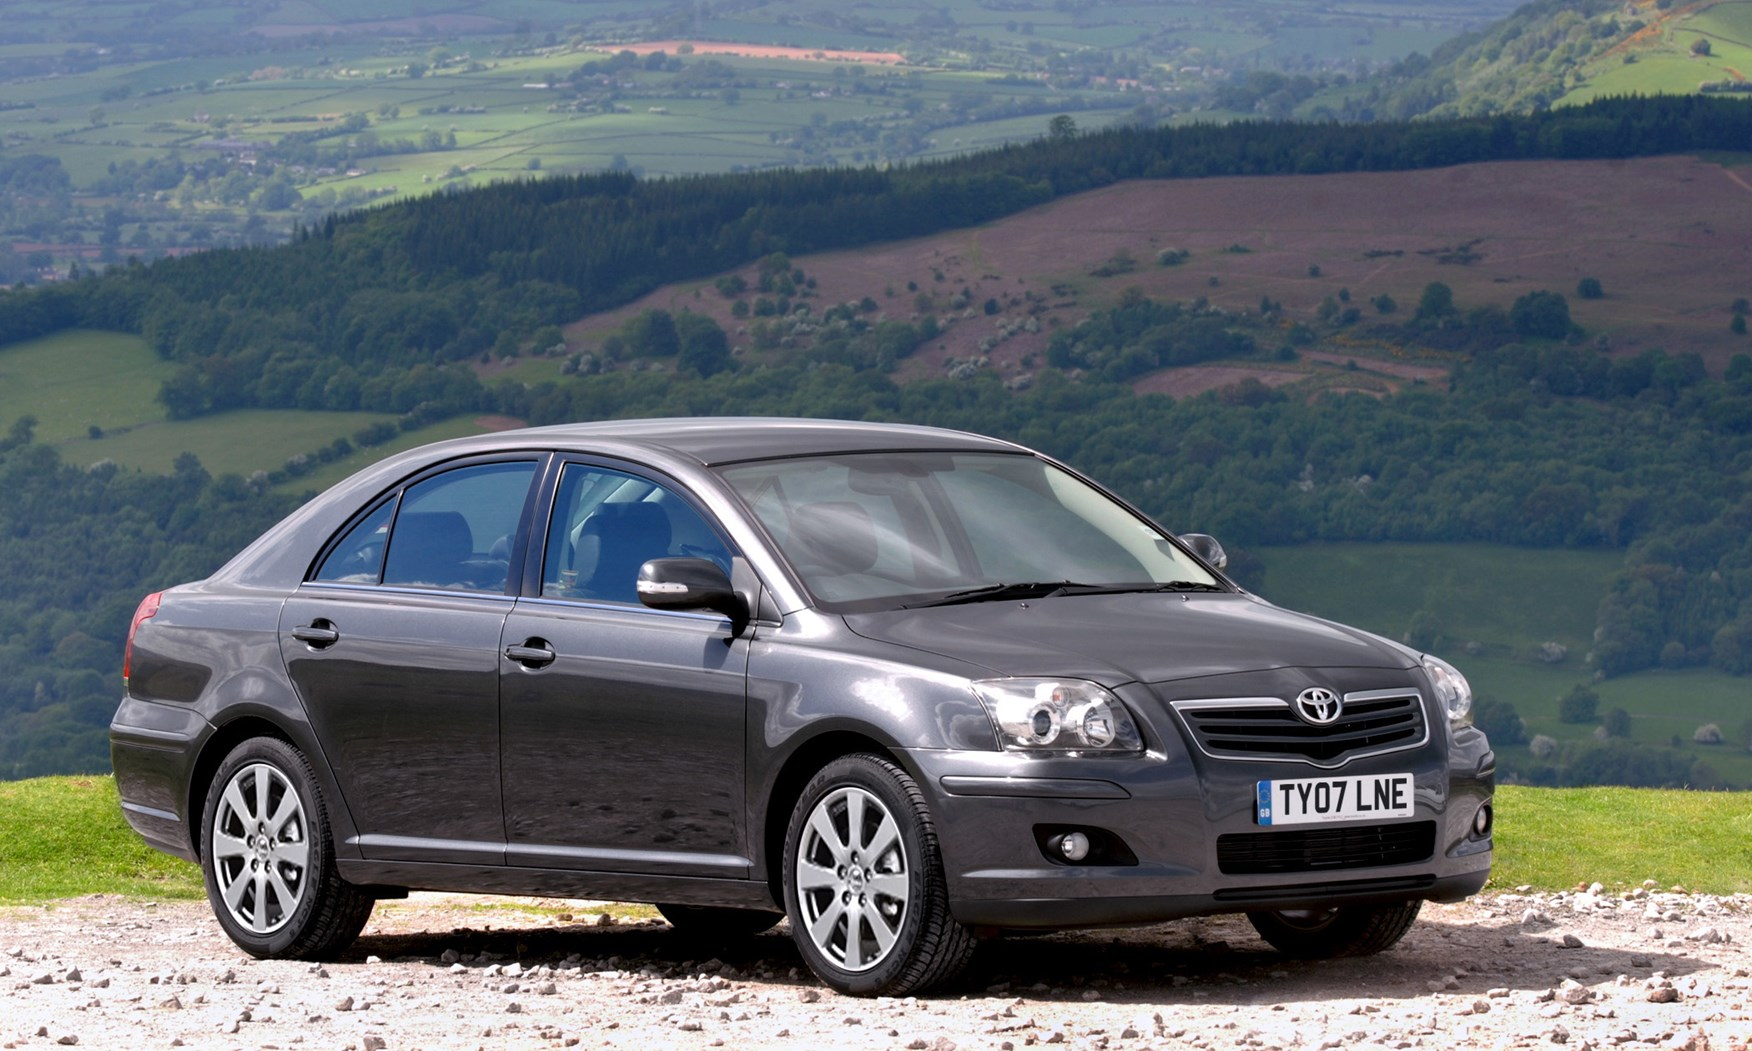 toyota avensis hatchback review 2003 2008 parkers. Black Bedroom Furniture Sets. Home Design Ideas